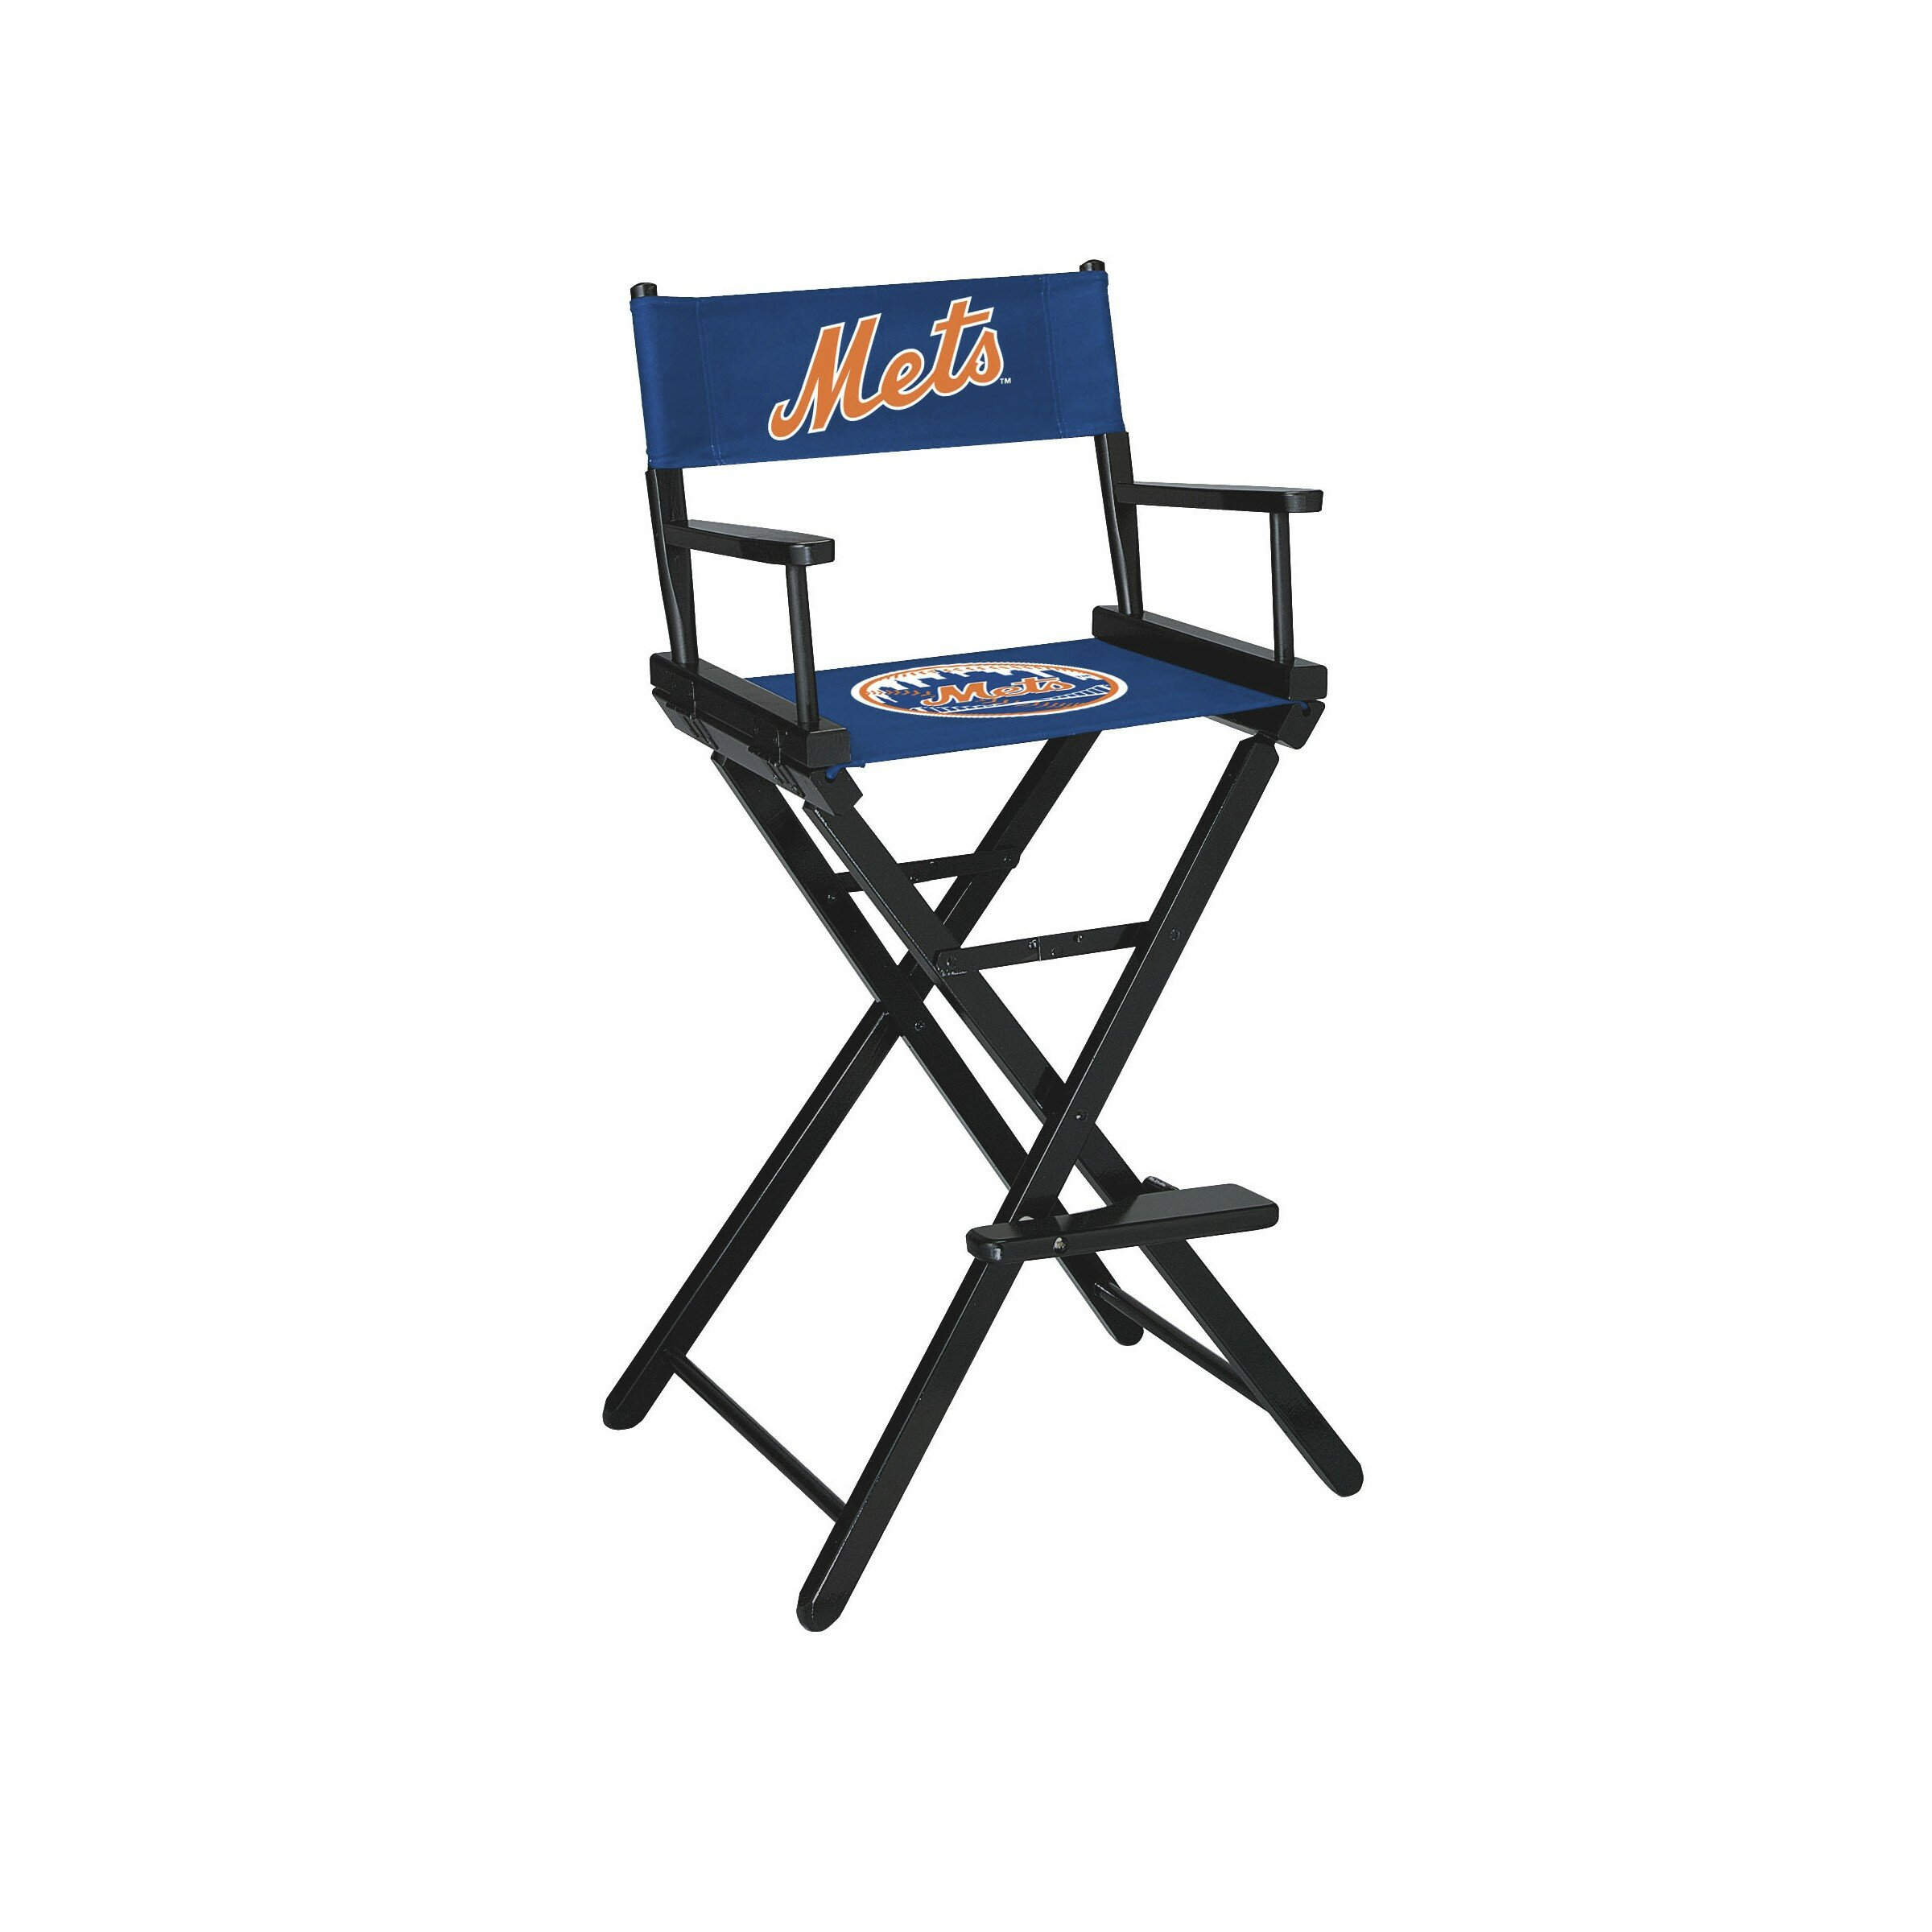 Remarkable Bar Height Folding Director Chair Onthecornerstone Fun Painted Chair Ideas Images Onthecornerstoneorg